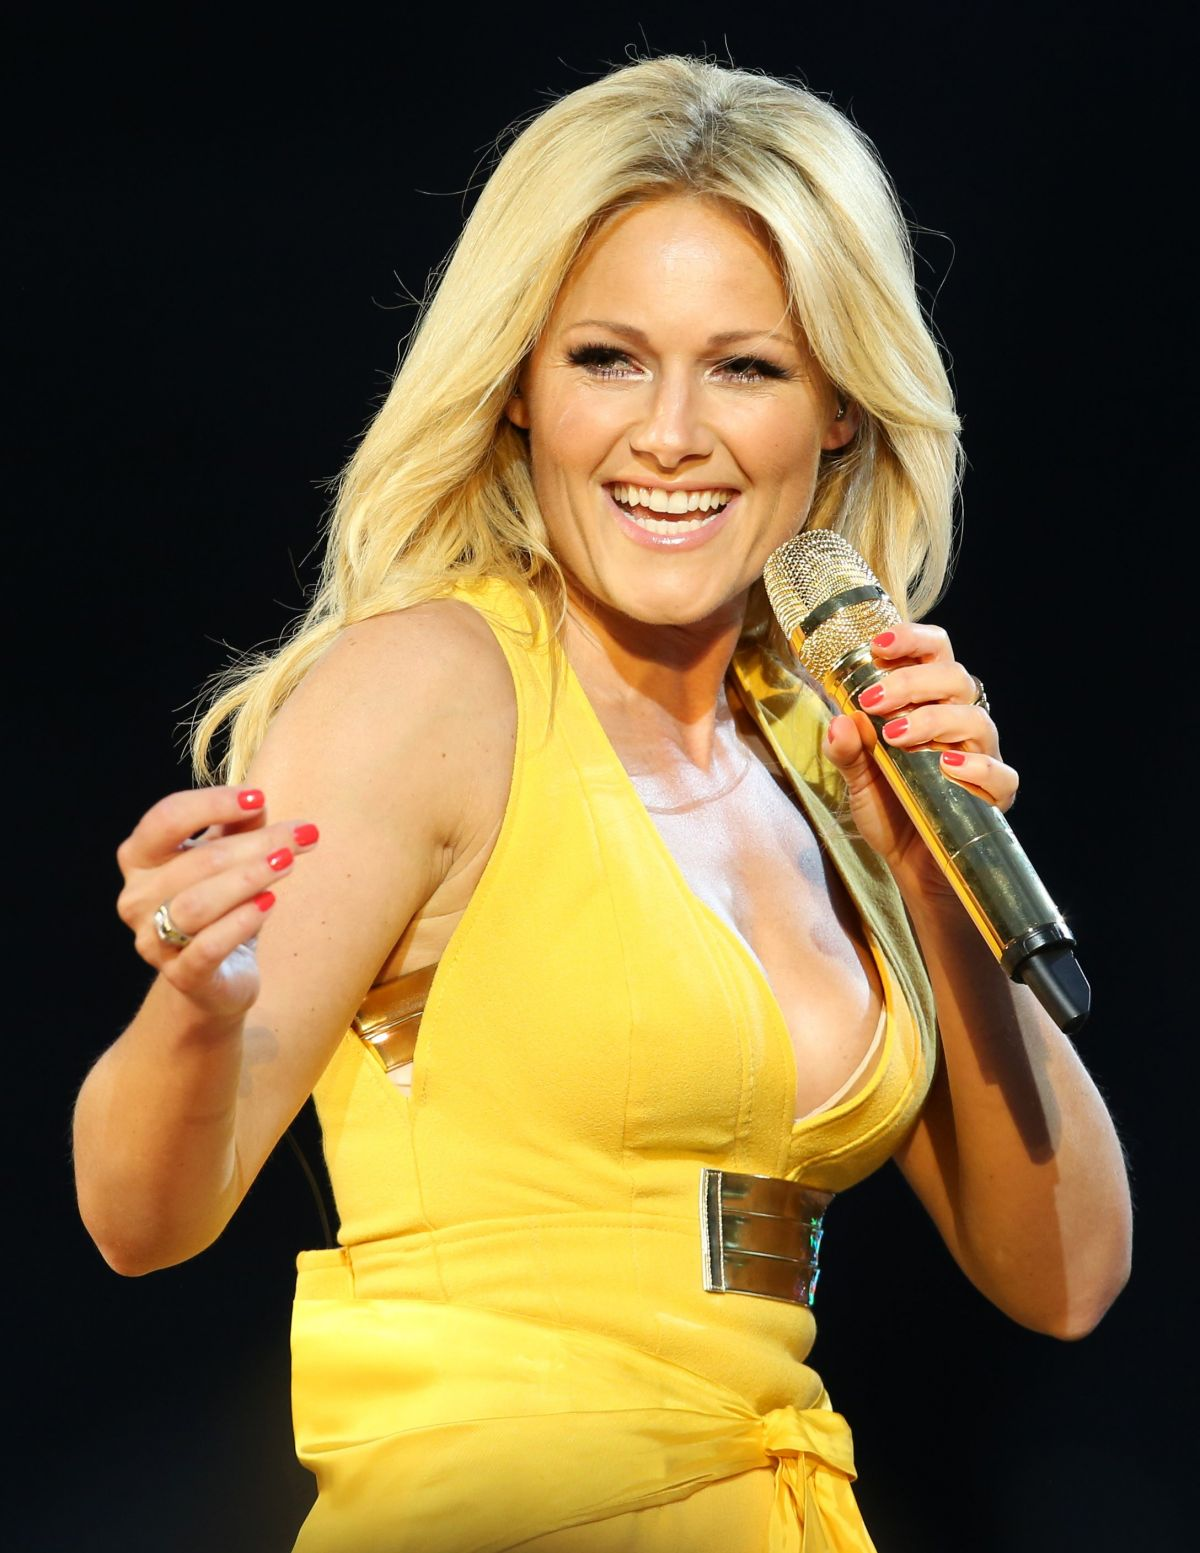 HELENE FISCHER at Stadion Tour in Rostock 06/02/2015